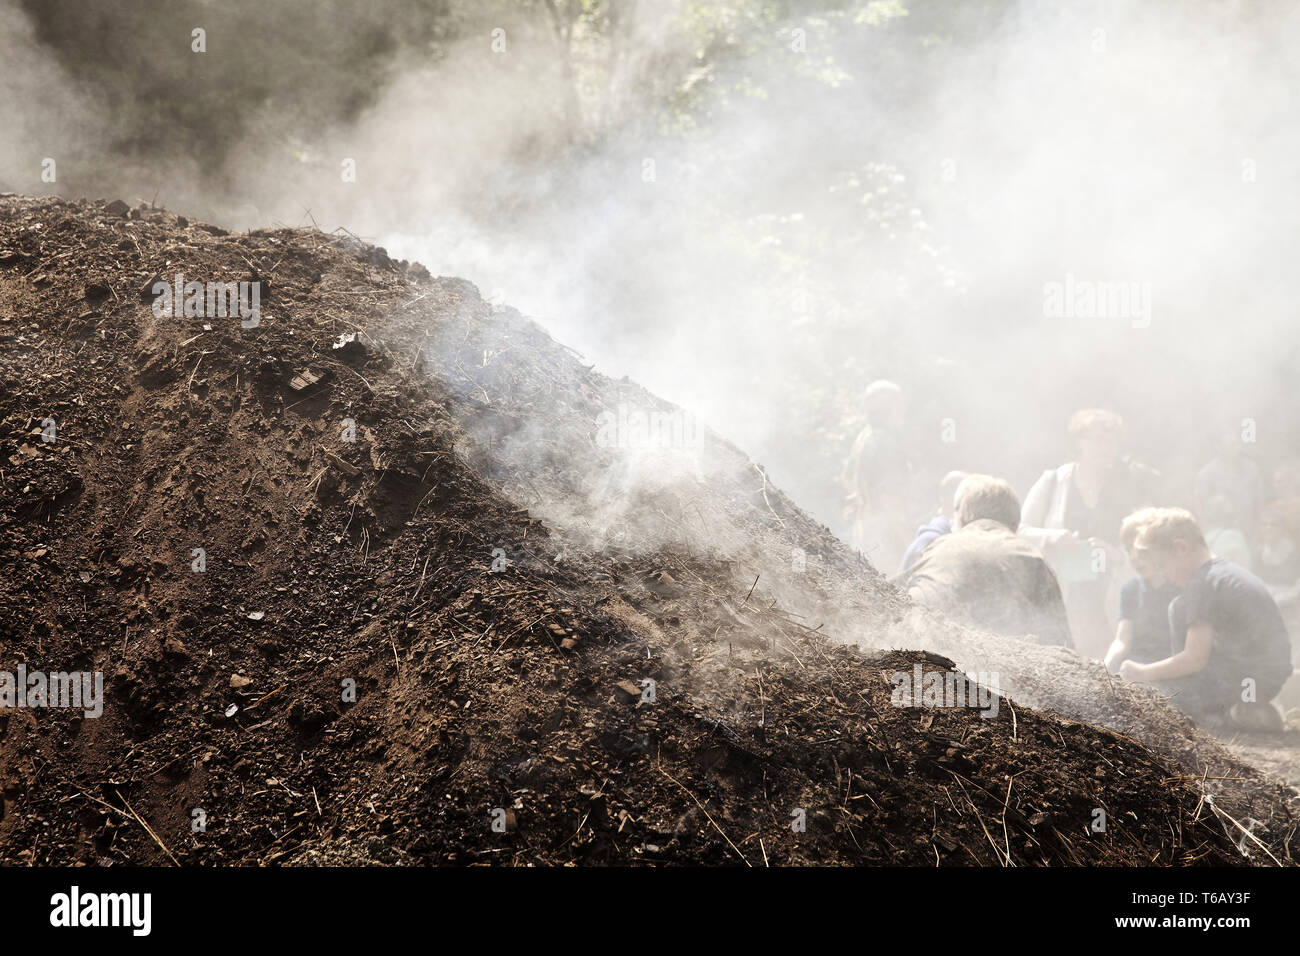 smoking charcoal pile, Ennepetal, Ruhr Area, North Rhine-Westphalia, Germany - Stock Image